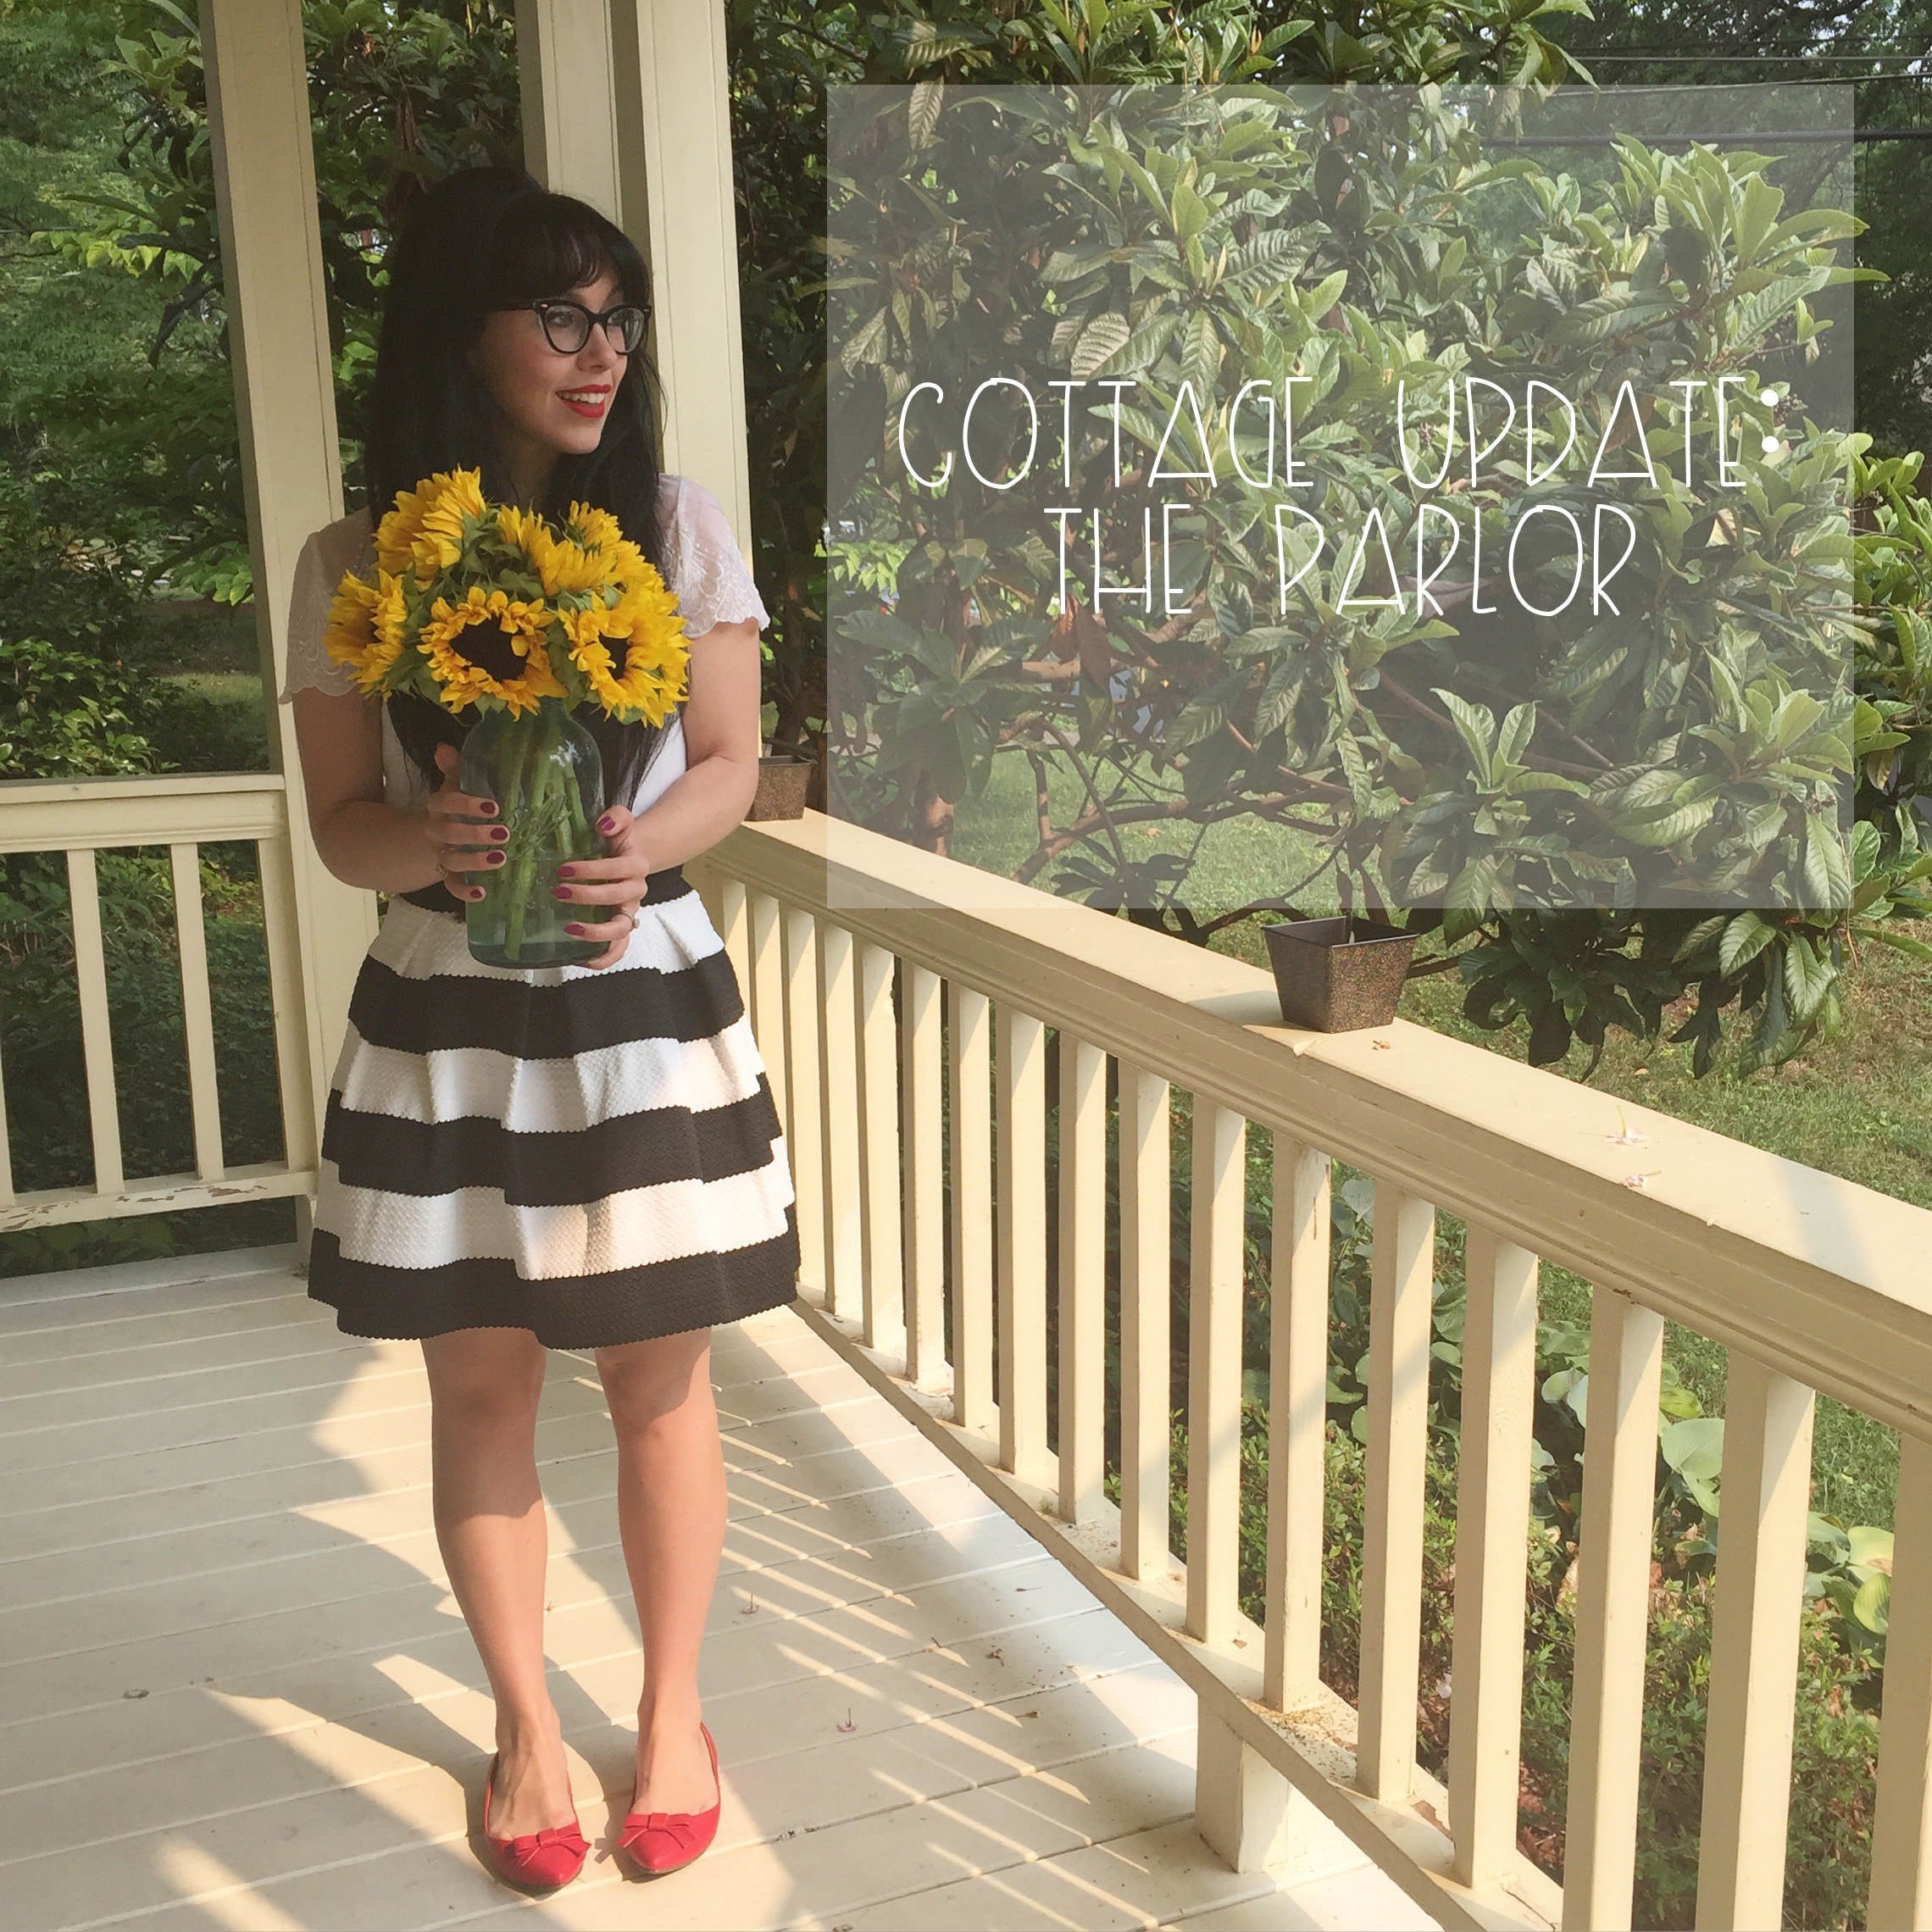 cottage update the parlor | Red Autumn Co